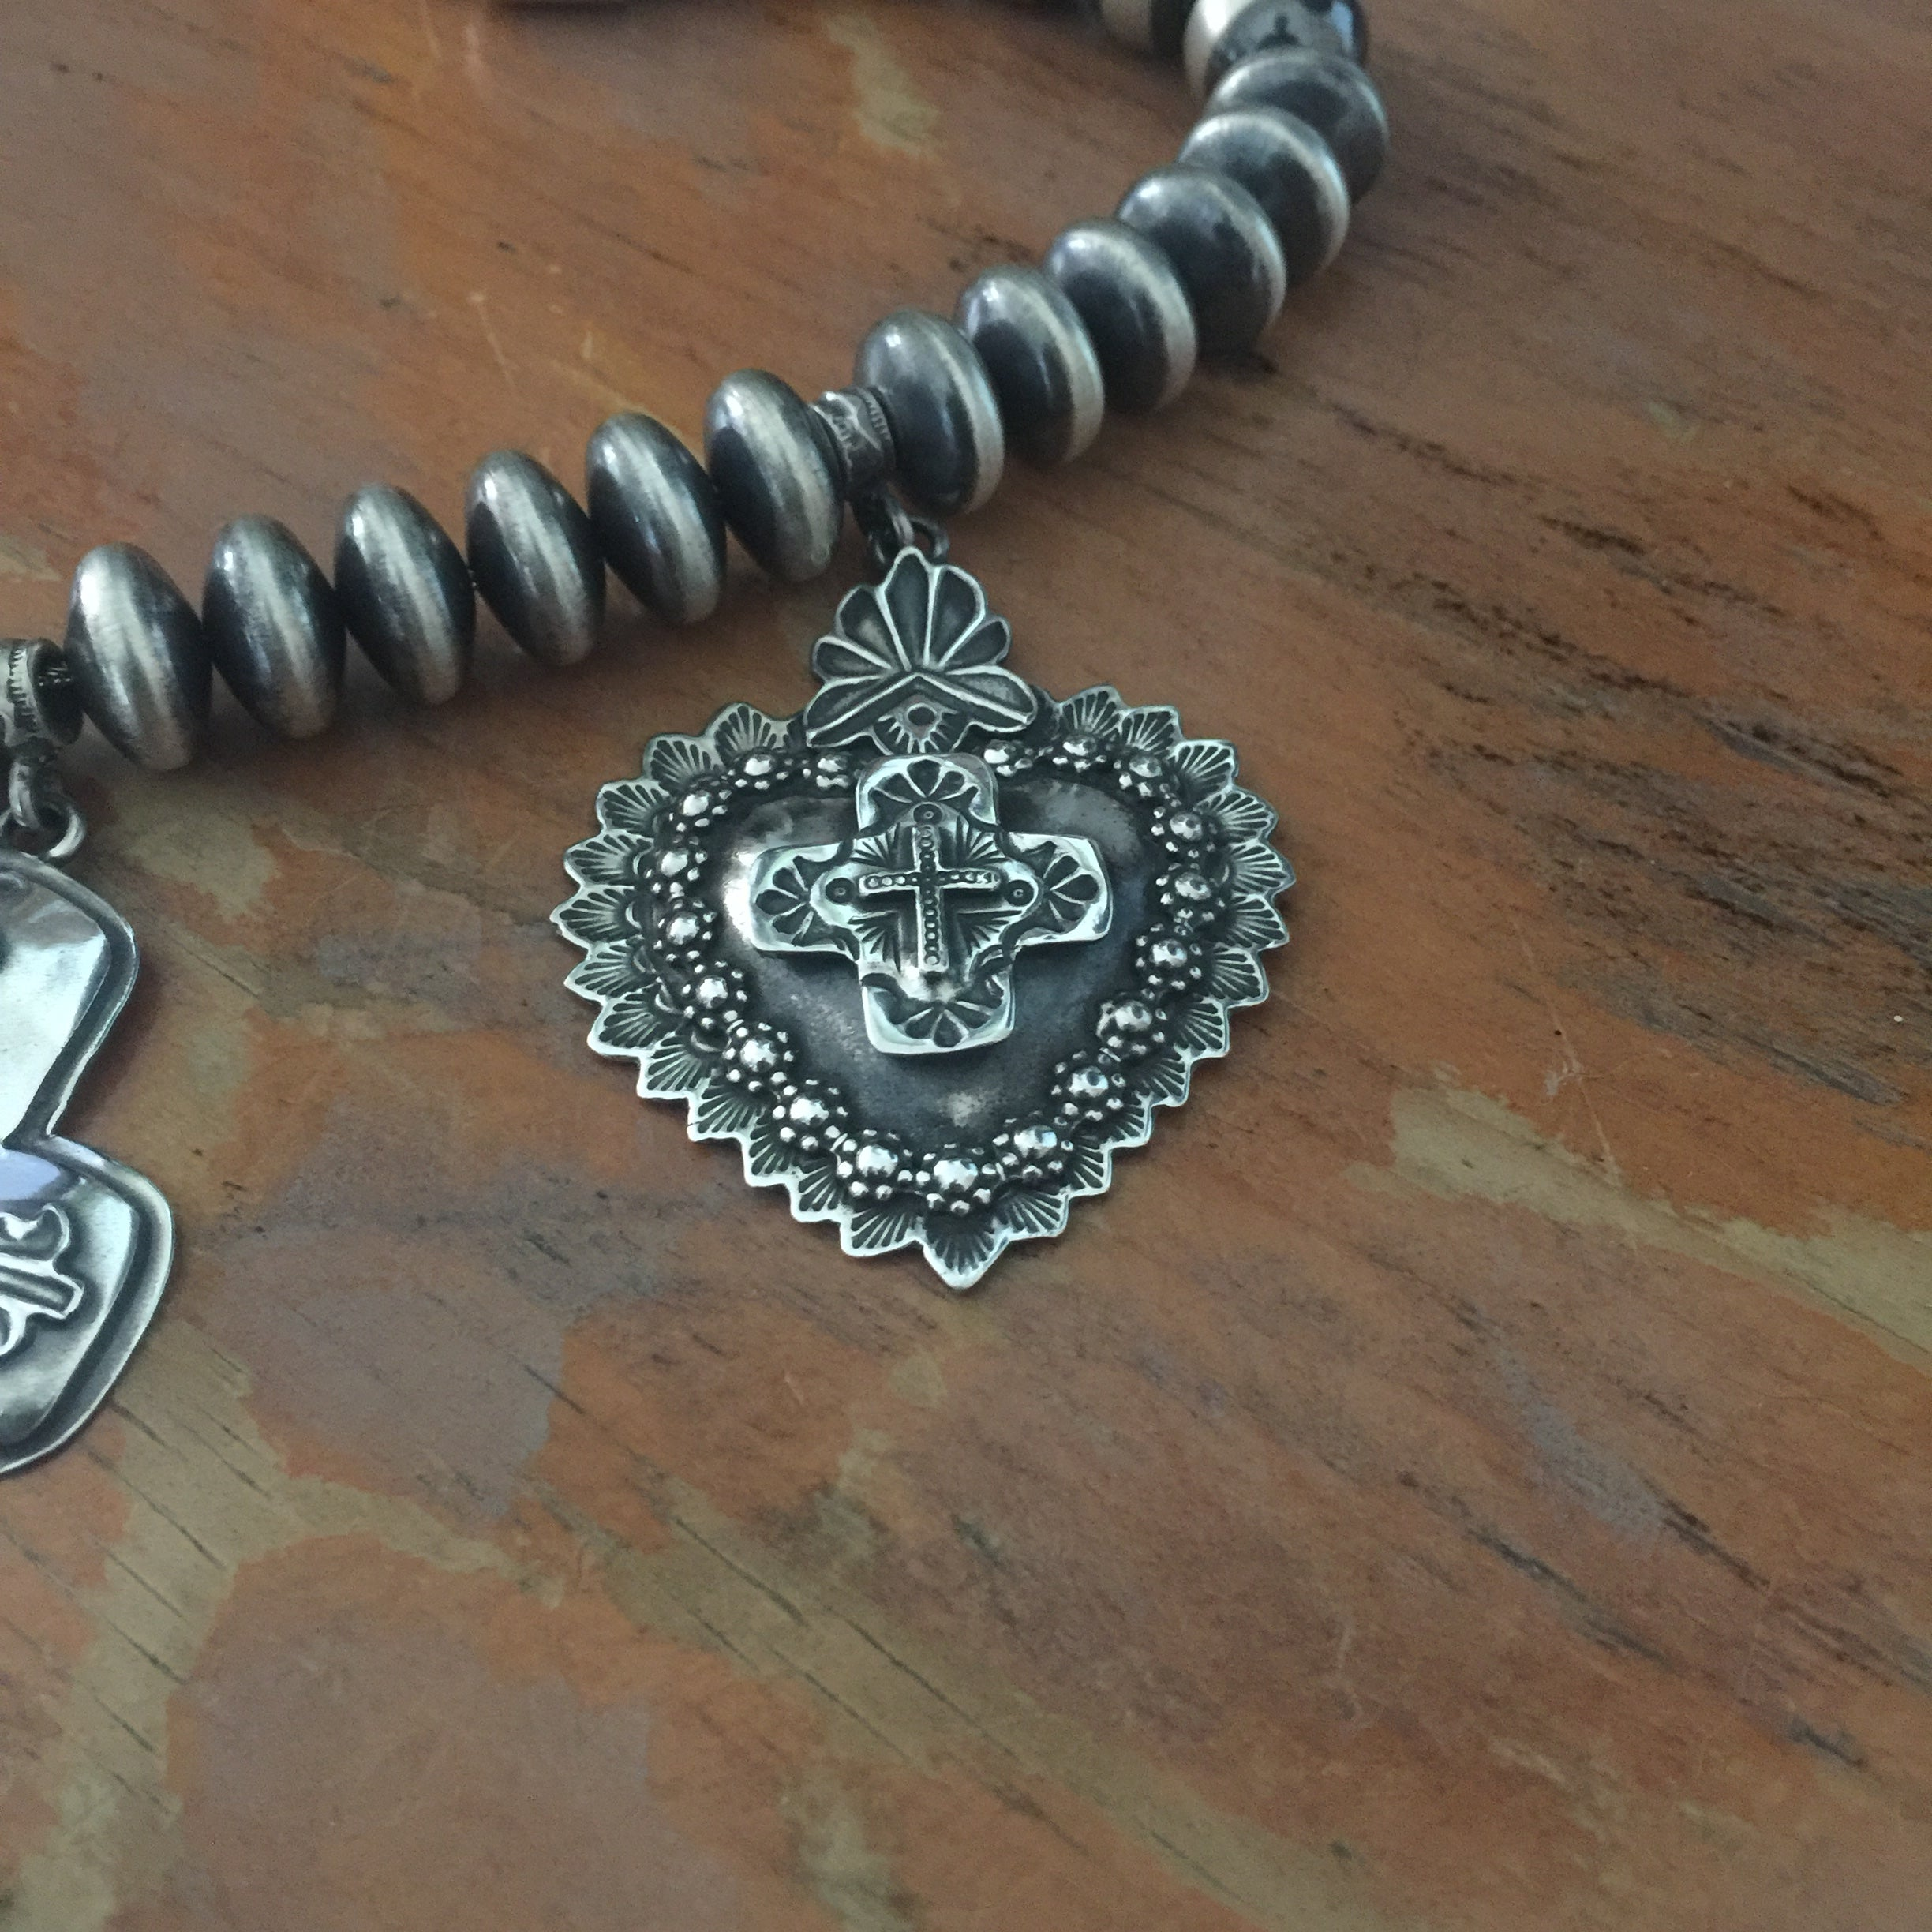 Award-winning My Mothers Heart Necklace